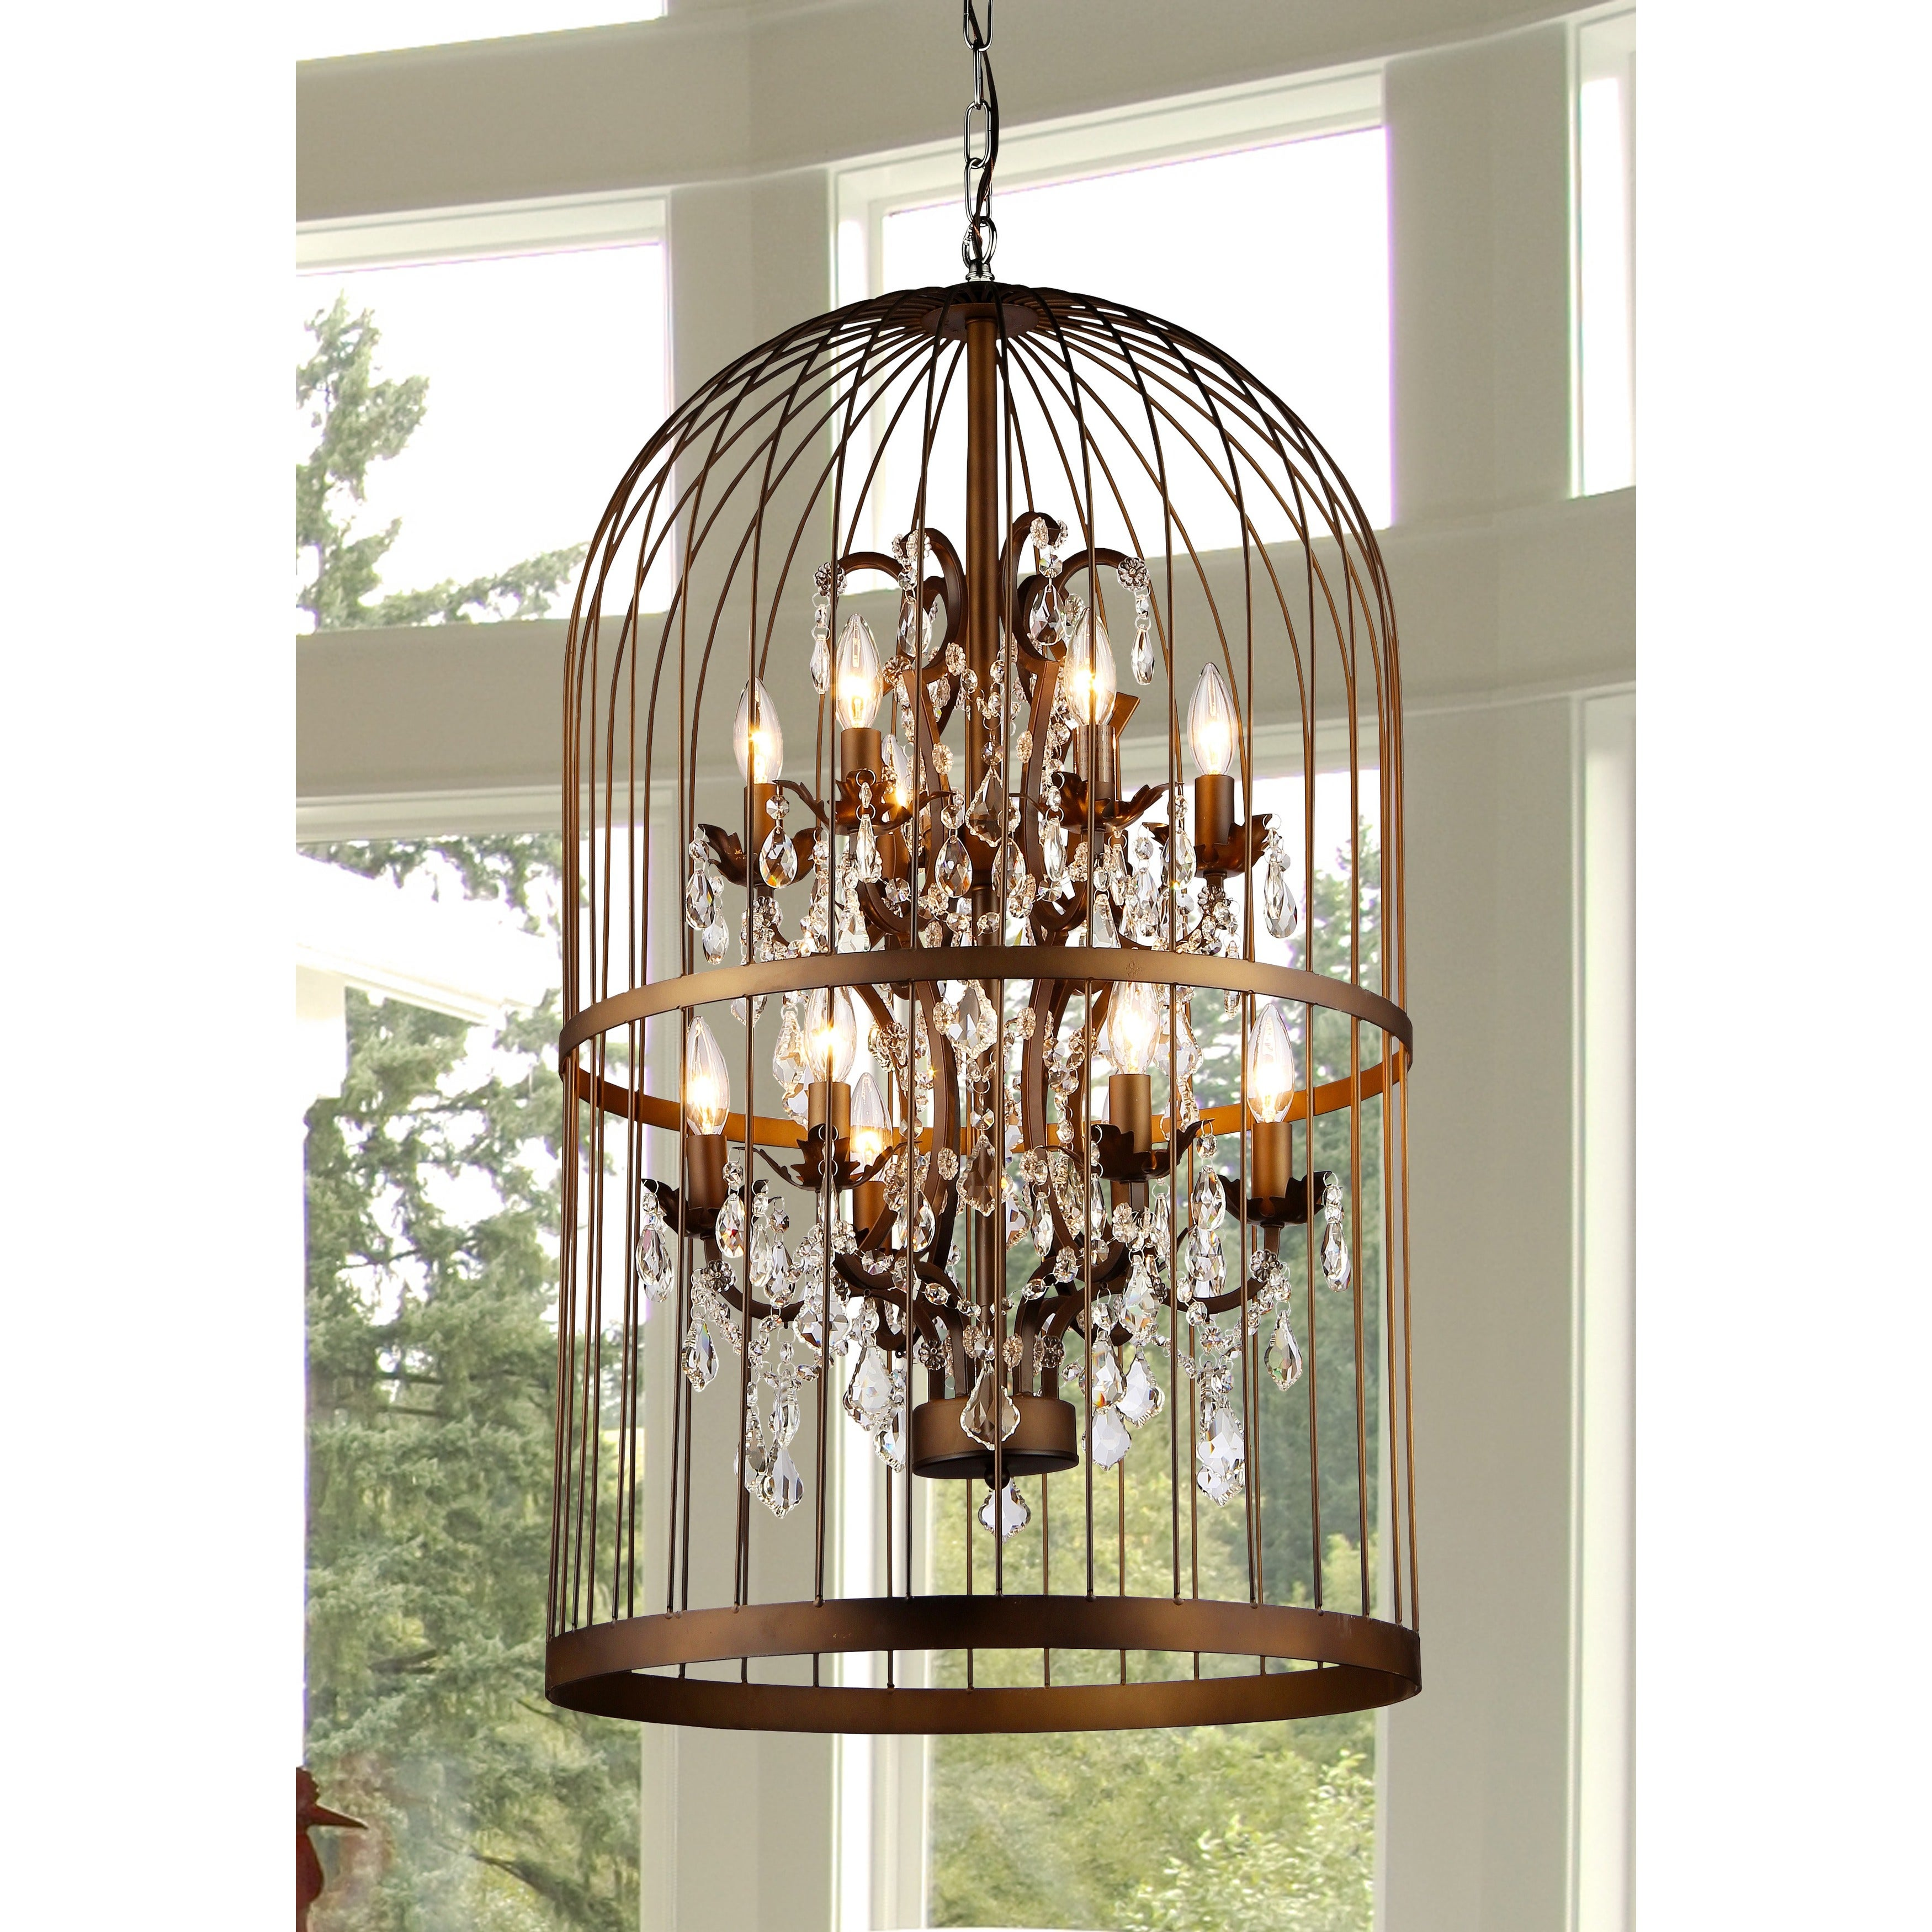 Warehouse of tiffany rinee iii cage chandelier free shipping warehouse of tiffany rinee iii cage chandelier free shipping today overstock 16976644 arubaitofo Images